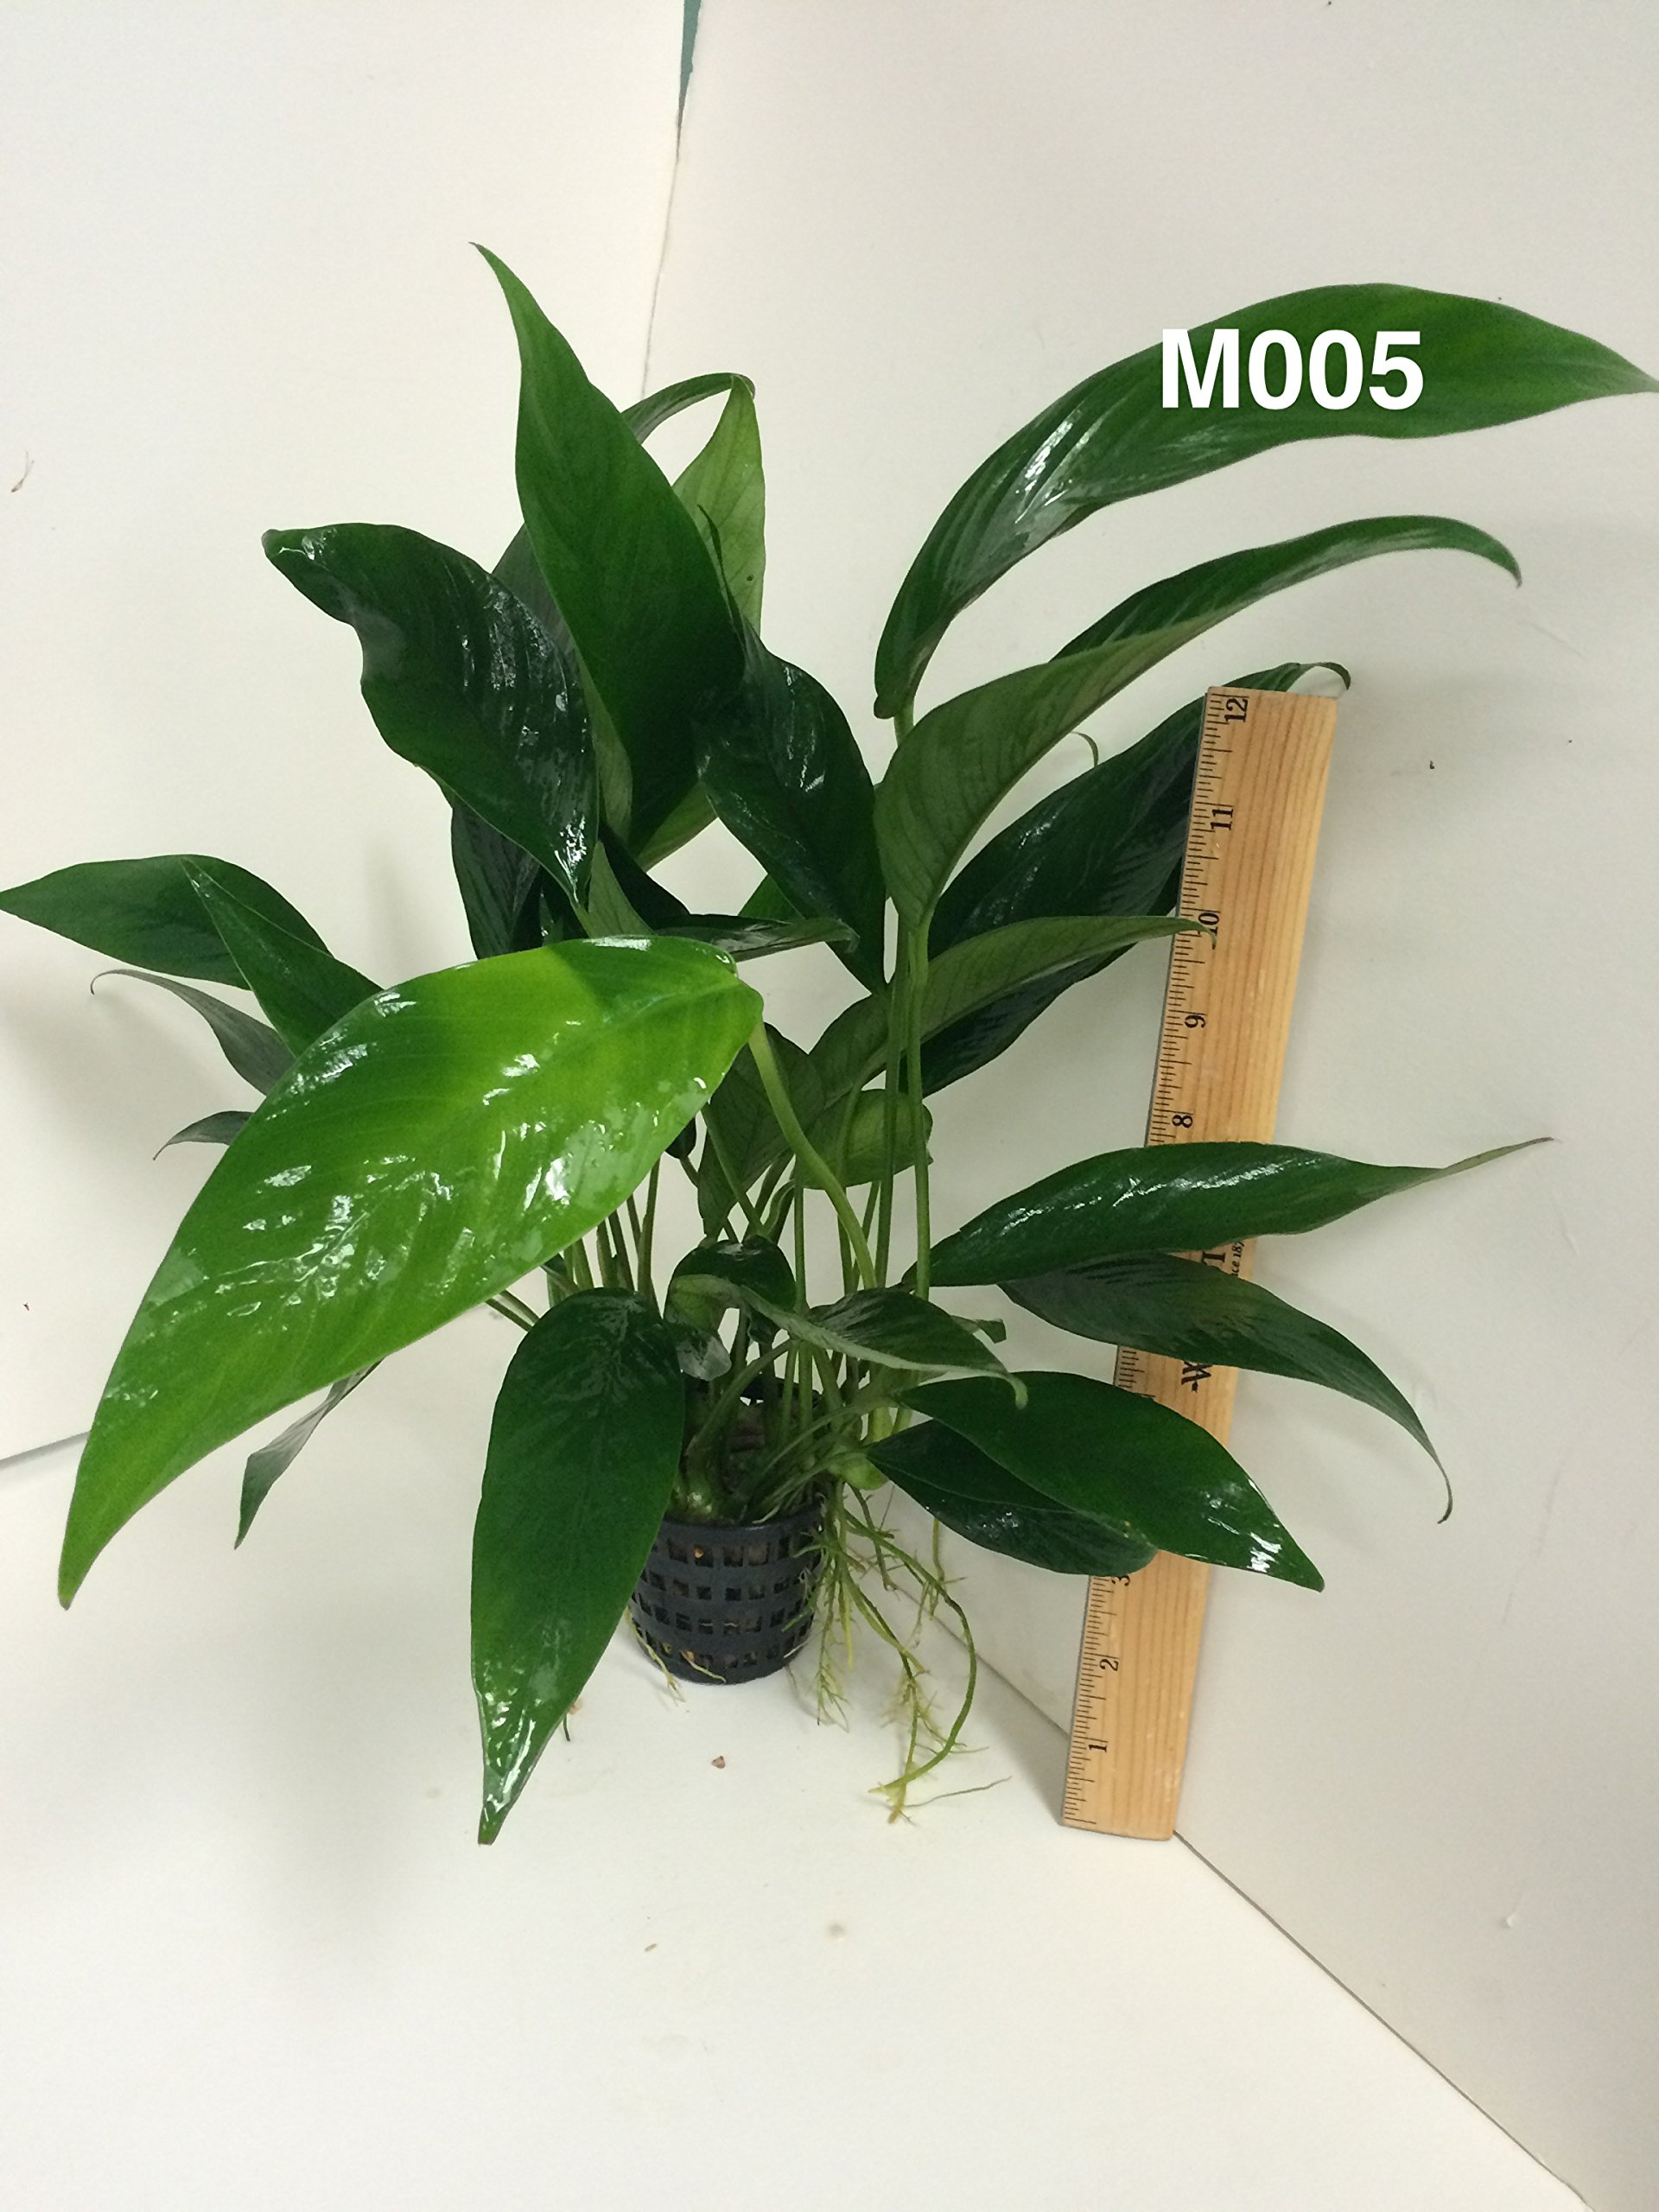 Anubias congensis Mother Pot Plant M005 Live Aquatic Plant by Jayco (Image #3)